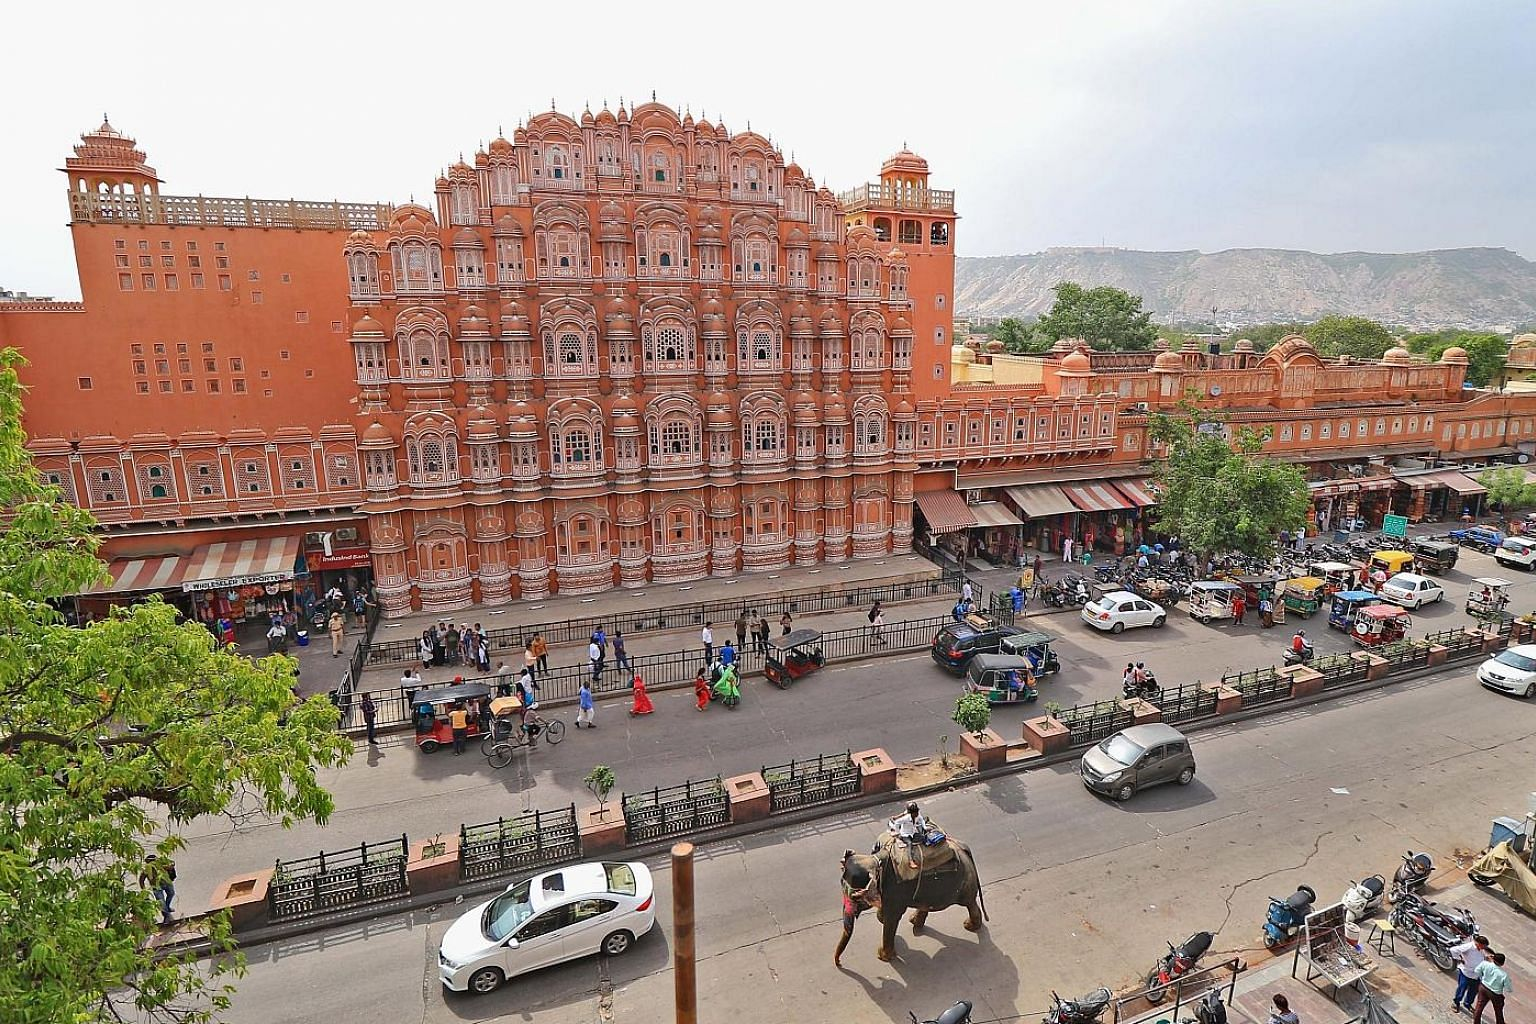 The Guggenheim Museum designed by architect Frank Lloyd Wright is one of eight Wright properties named a world heritage site. The historical Hawa Mahal palace in Jaipur, India. The Walled City of Jaipur, also known as the Pink City, has been added to